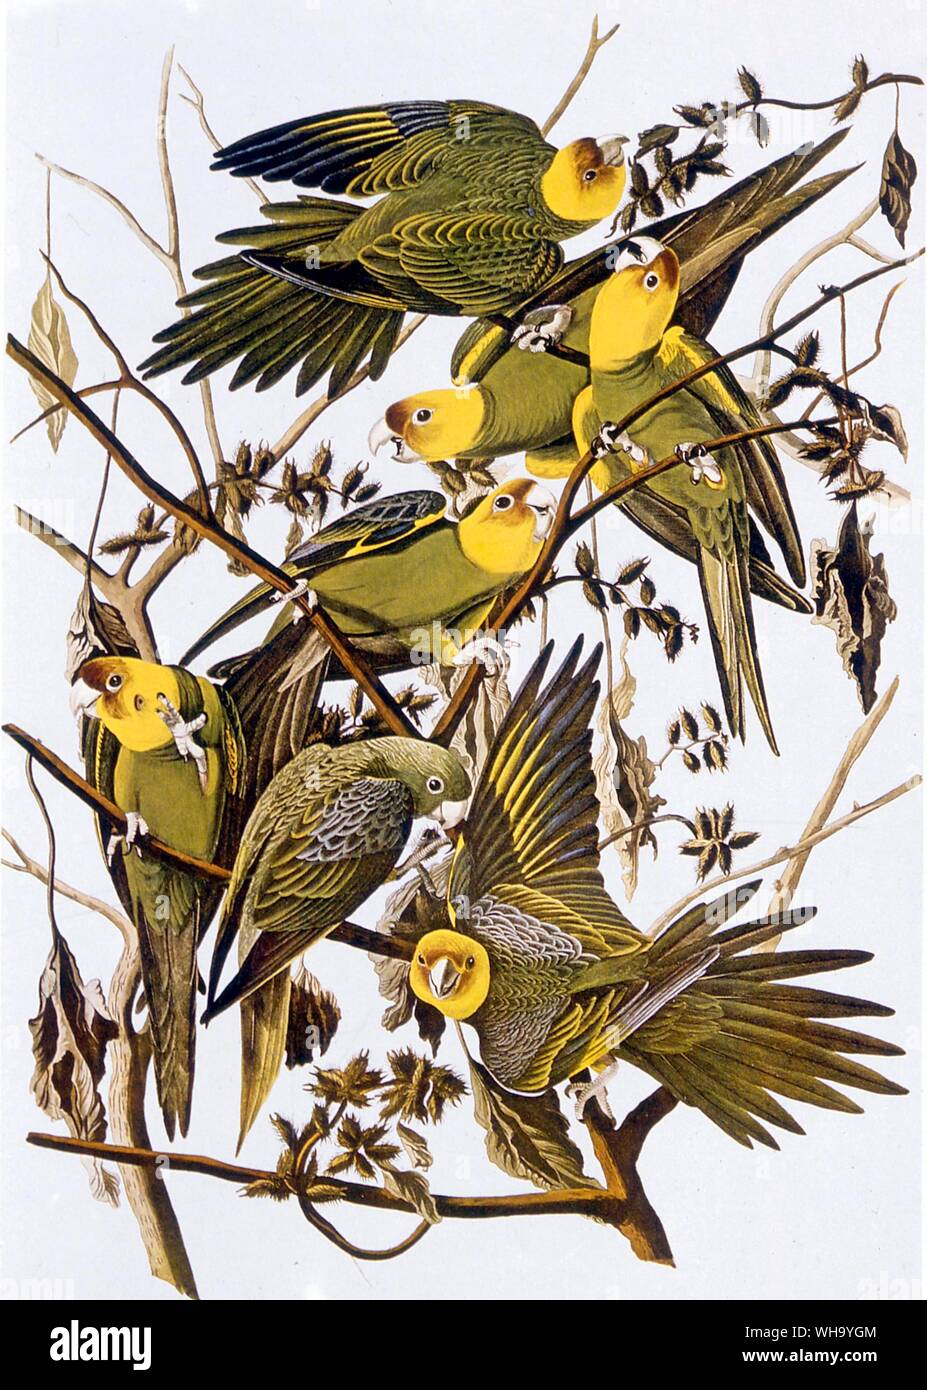 Carolina Parakeets. Aquatint by J.J. Audubon and R. Havall the younger from Audubon's Birds of America (London, 1827-38), Pl.26. - Length of bird 30cm (12in) Stock Photo